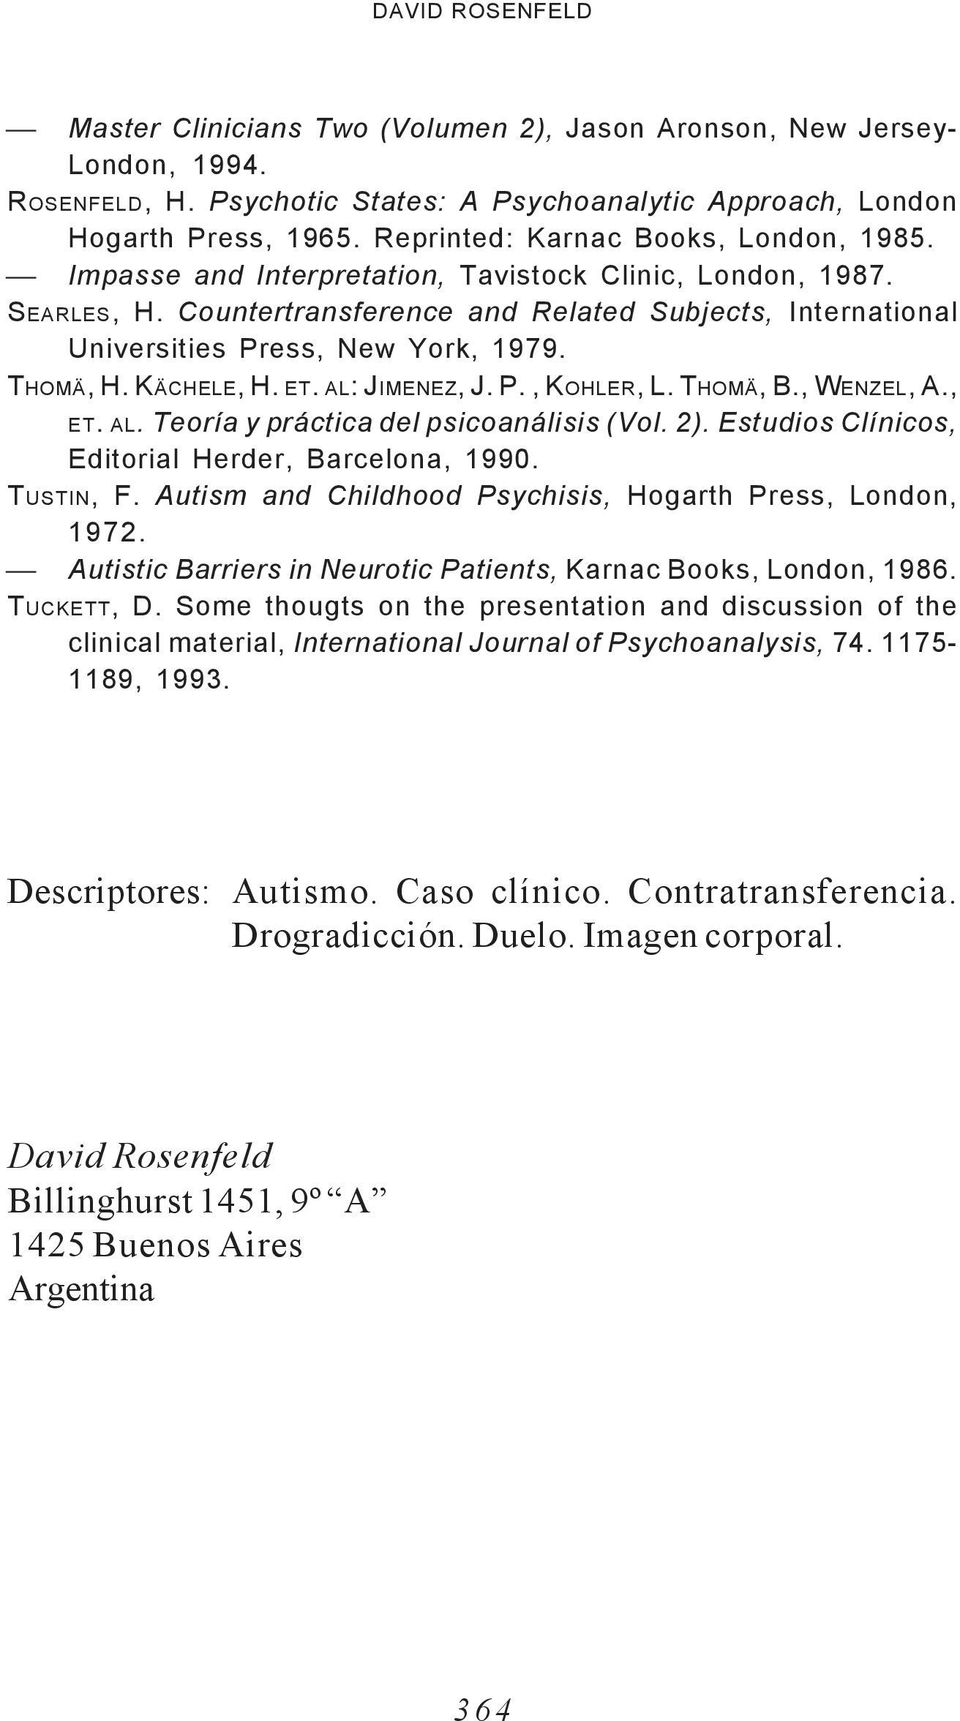 Countertransference and Related Subjects, International Universities Press, New York, 1979. THOMÄ, H. KÄCHELE, H. ET. AL: JIMENEZ, J. P., KOHLER, L. THOMÄ, B., WENZEL, A., ET. AL. Teoría y práctica del psicoanálisis (Vol.